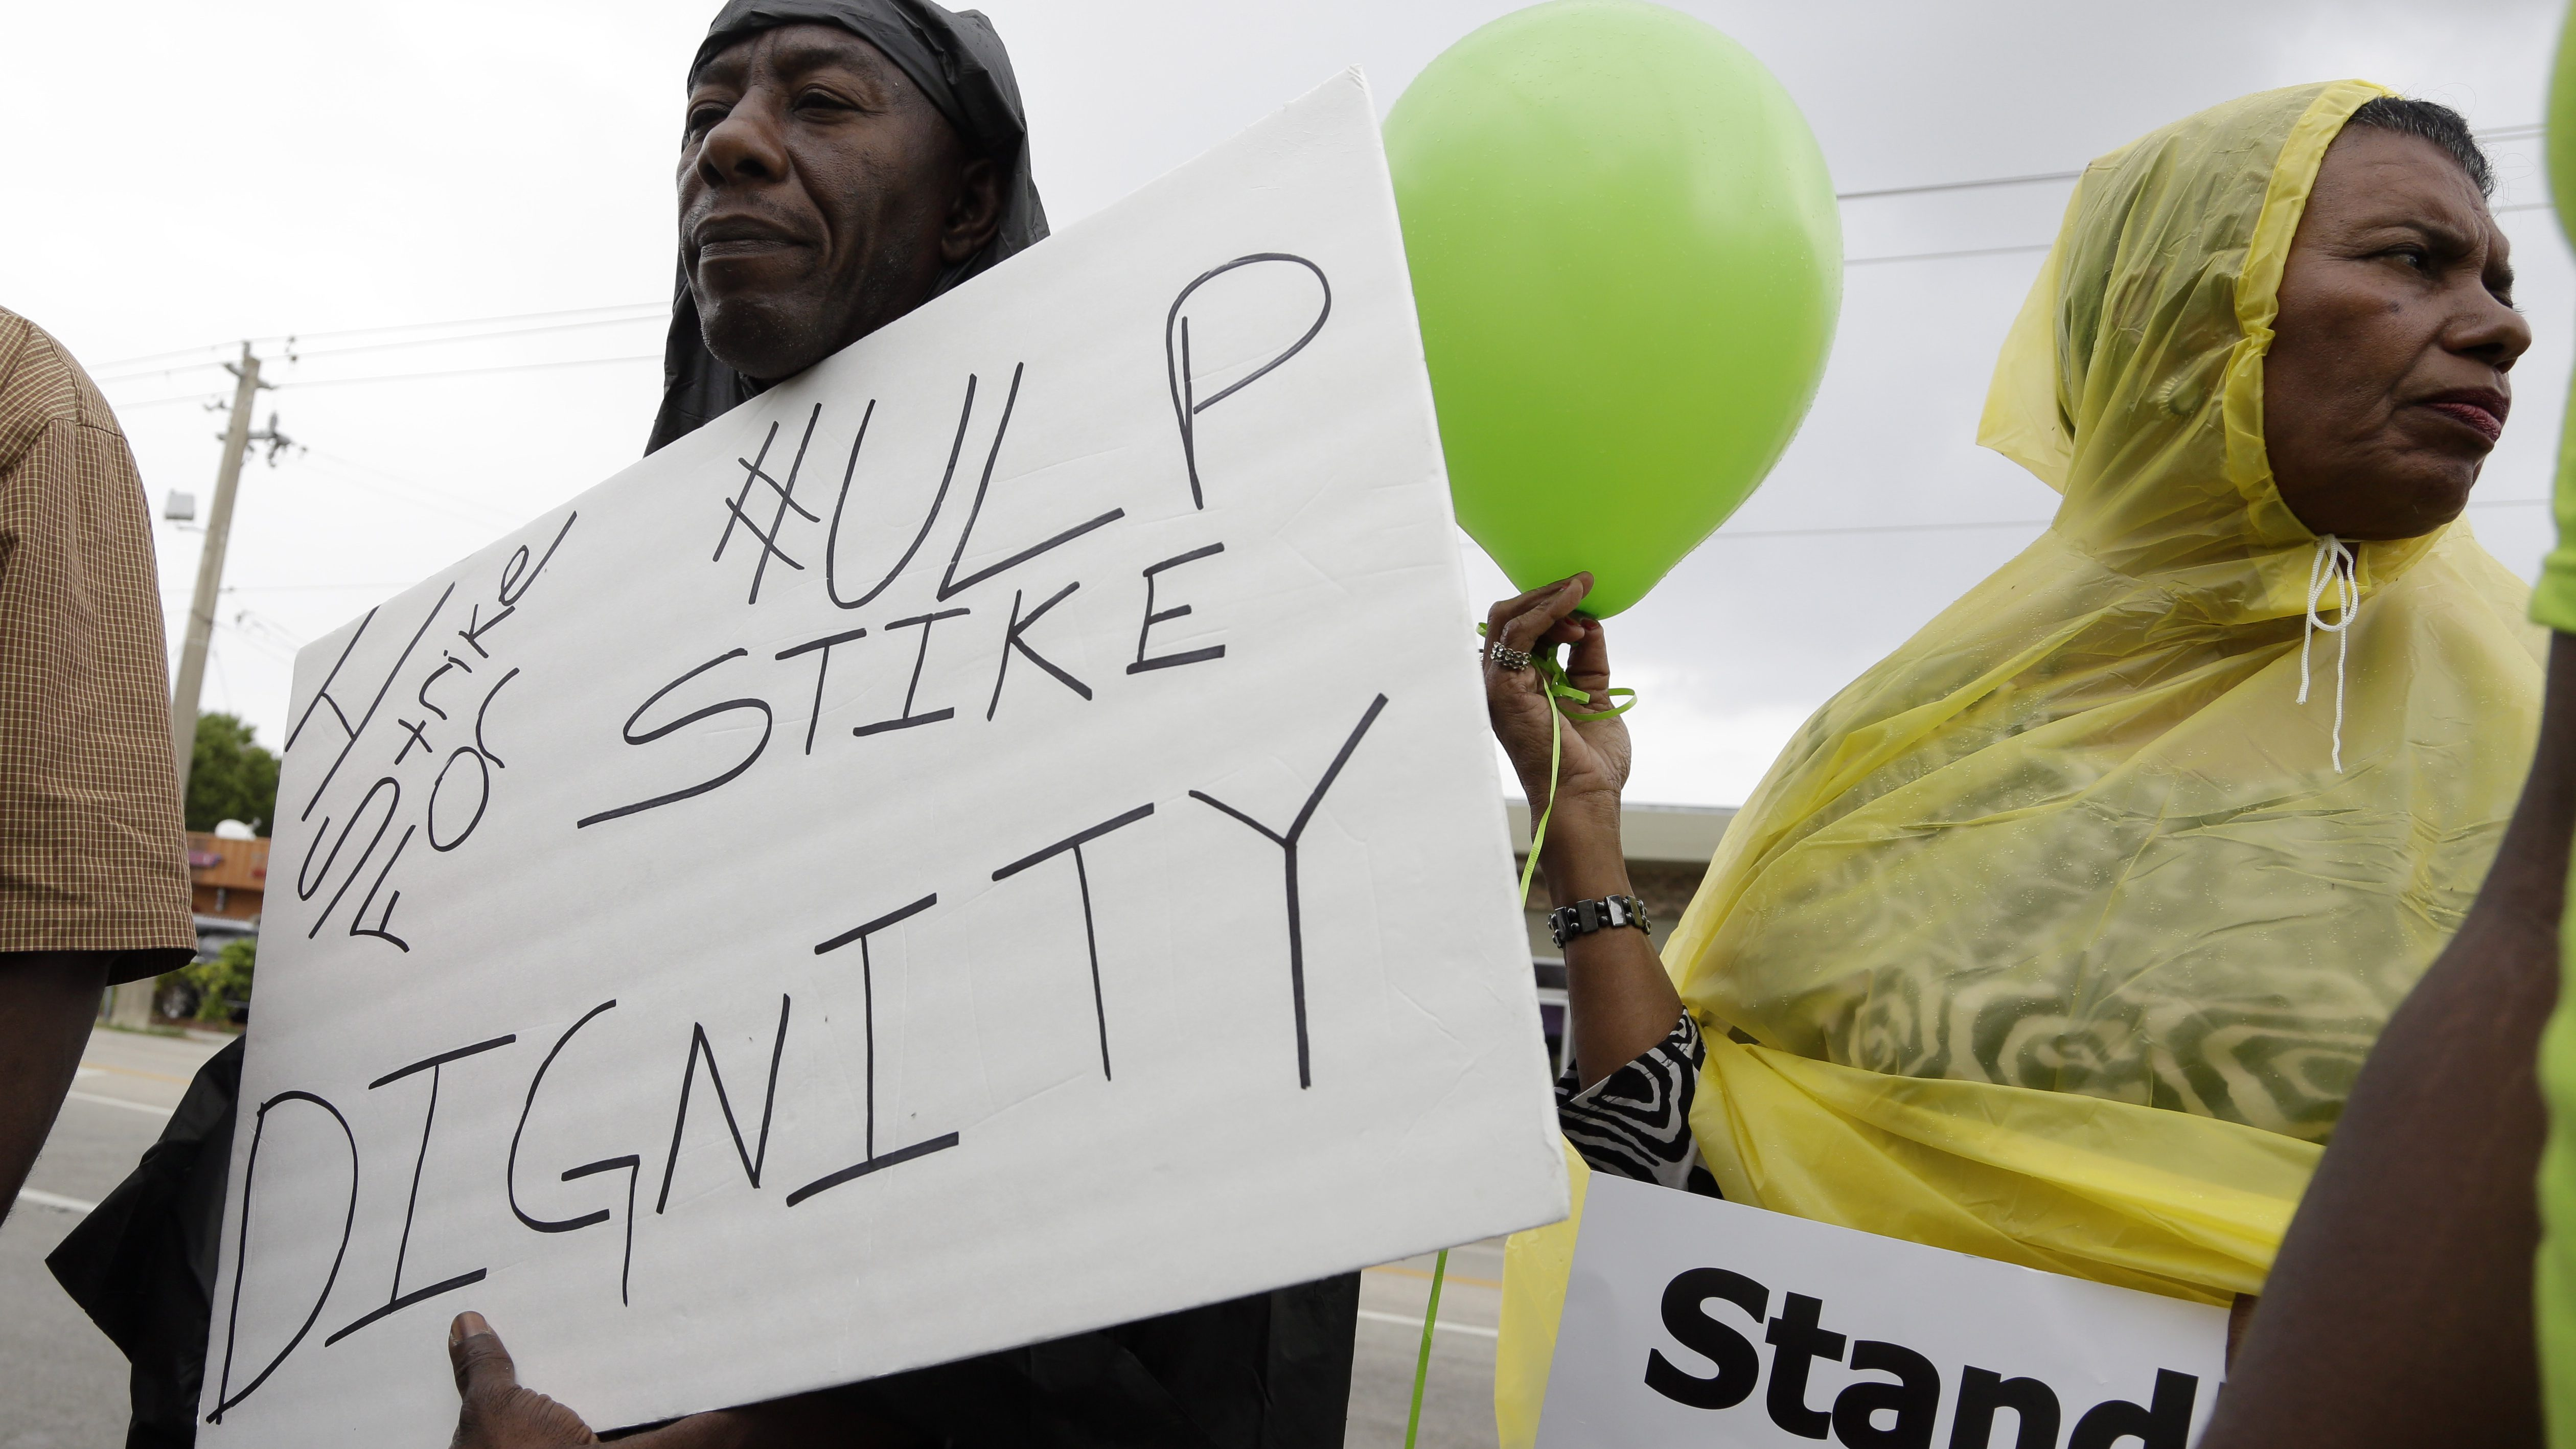 Striking Walmart employee Paul Toussaint, of Miami, left, and activist Juanita Alvarez, of Miami, right, march outside of Walmart, protesting the company's firings and disciplinary actions against employees who have gone on strike in the past, Wednesday, June 4, 2014, in North Miami Beach, Fla. This is part of the national organization OUR Walmart which seeks improve working conditions for Walmart employees. Walmart's annual shareholders meeting is Friday in Arkansas.